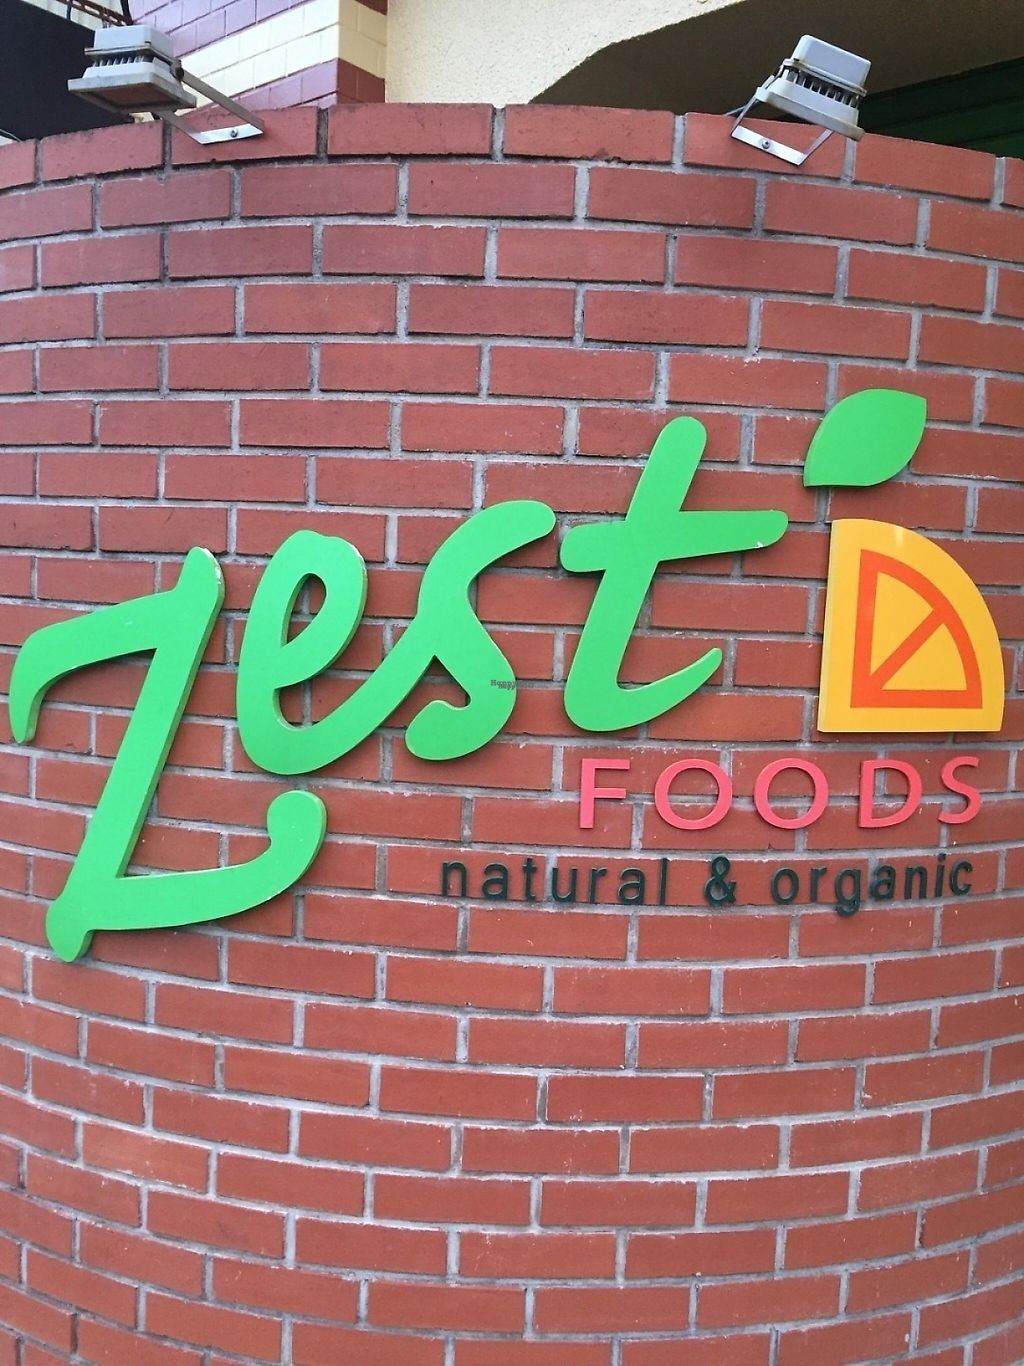 """Photo of Zest Foods  by <a href=""""/members/profile/Vegeiko"""">Vegeiko</a> <br/>Outside of a shop <br/> January 29, 2017  - <a href='/contact/abuse/image/86193/219201'>Report</a>"""